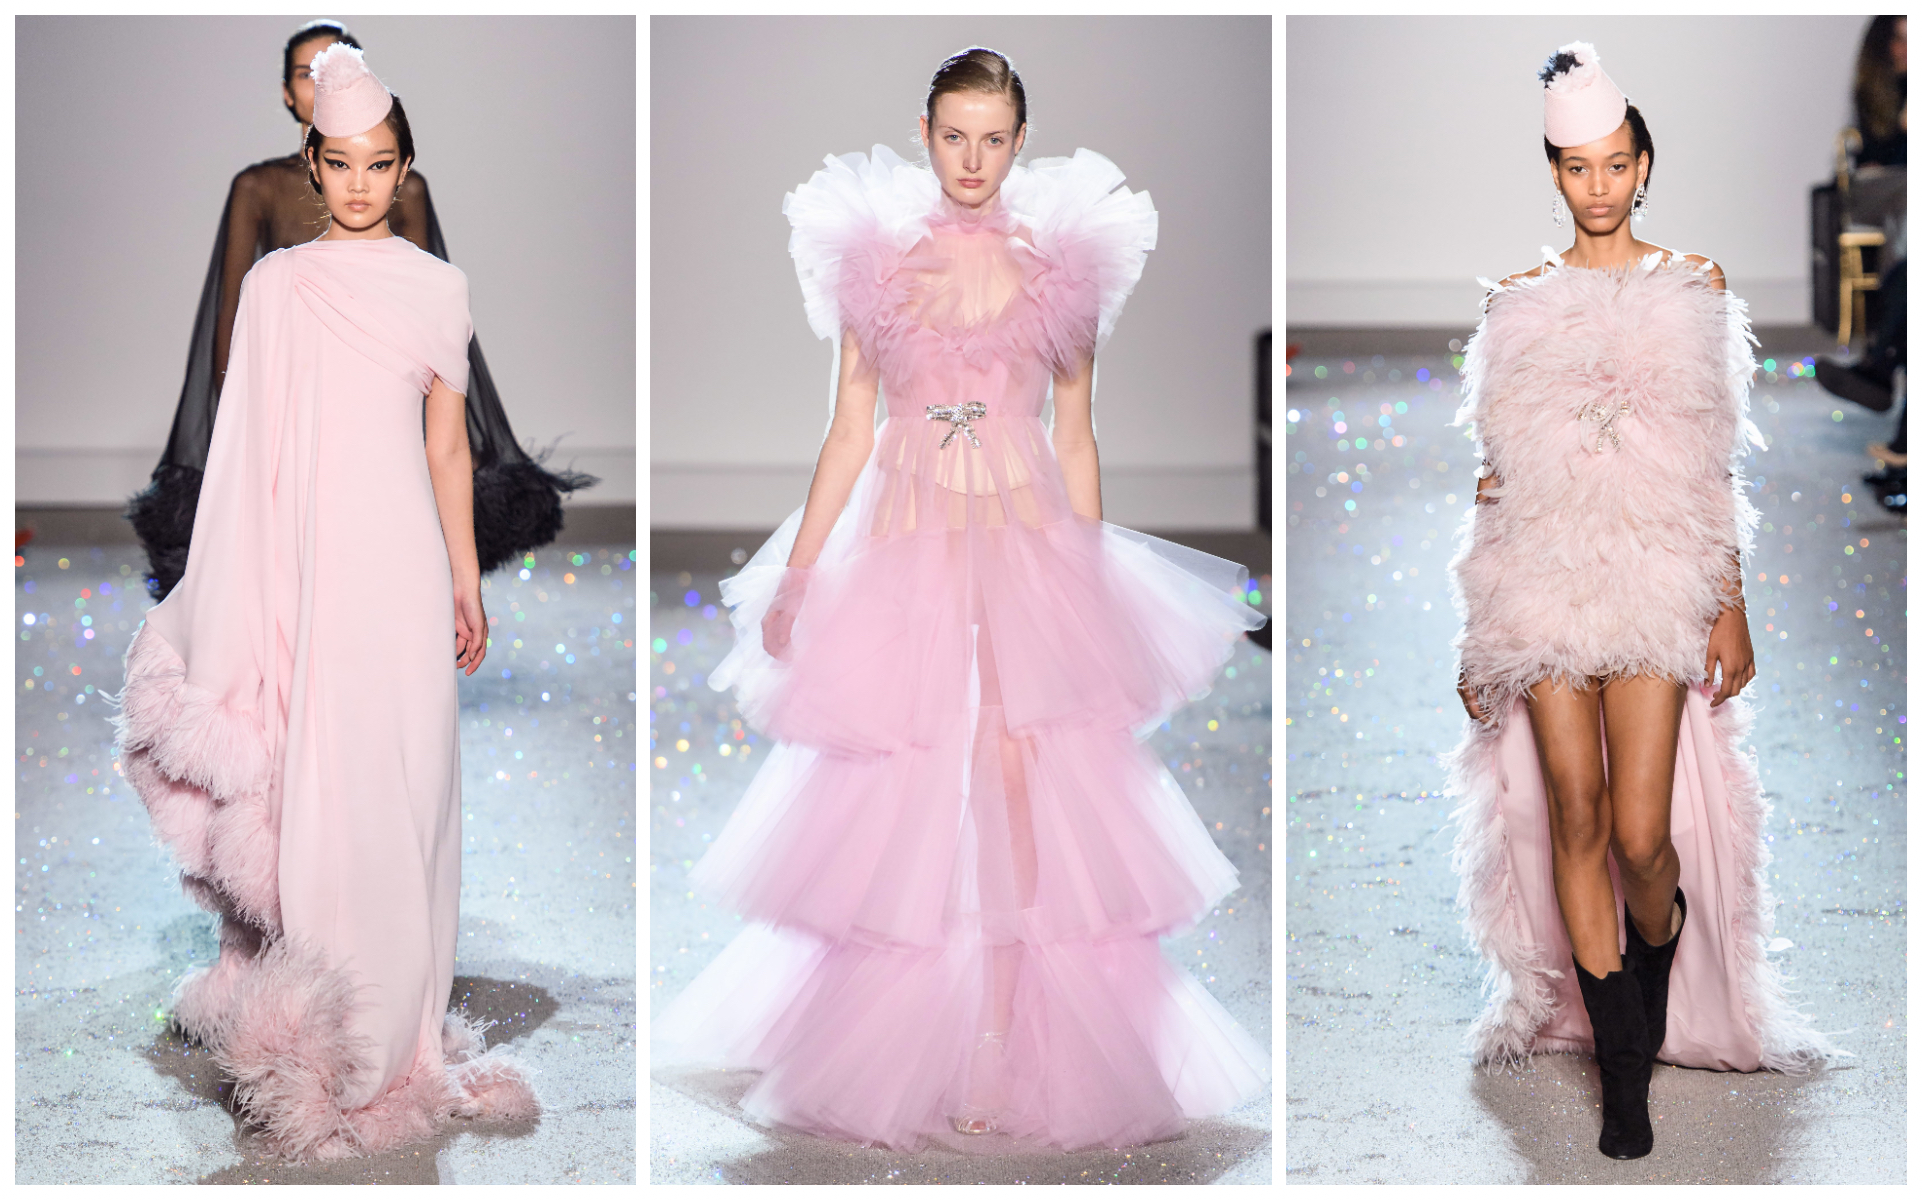 AWE-INSPIRING COUTURE BY VALENTINO, GIVENCHY AND GIAMBATTISTA VALLI